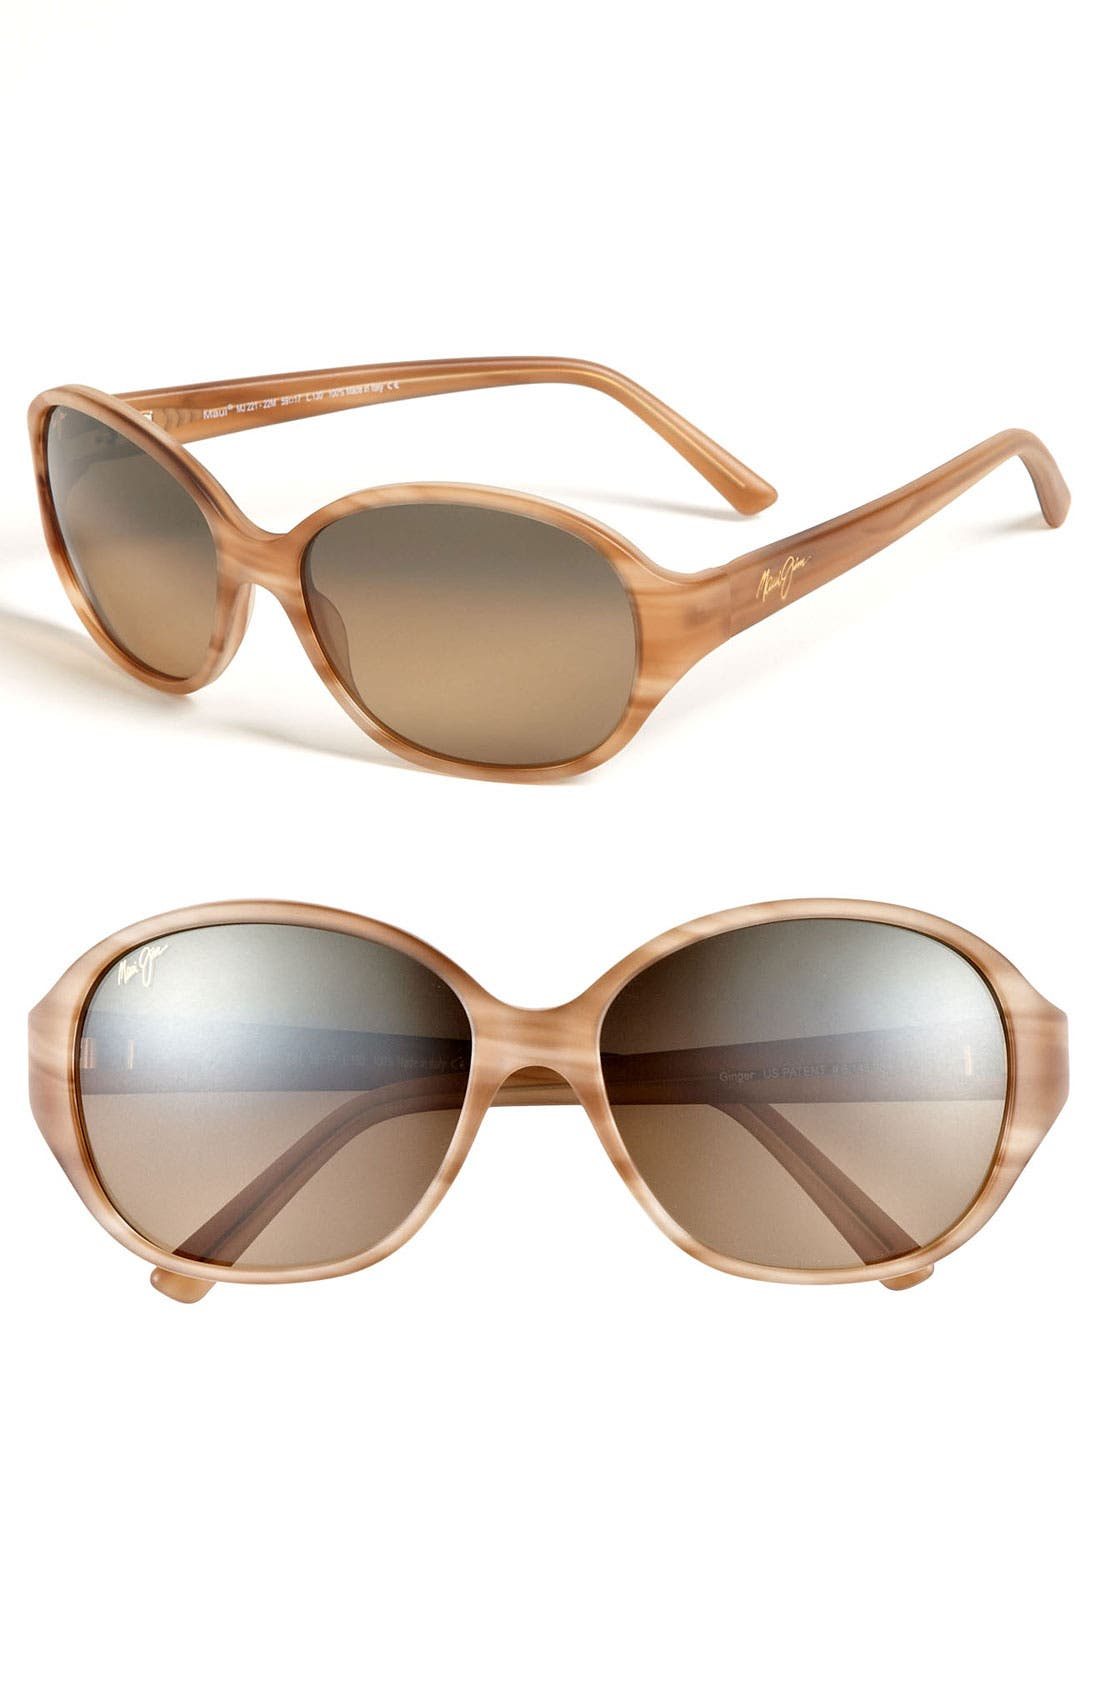 Main Image - Maui Jim 'Ginger' 59mm Sunglasses